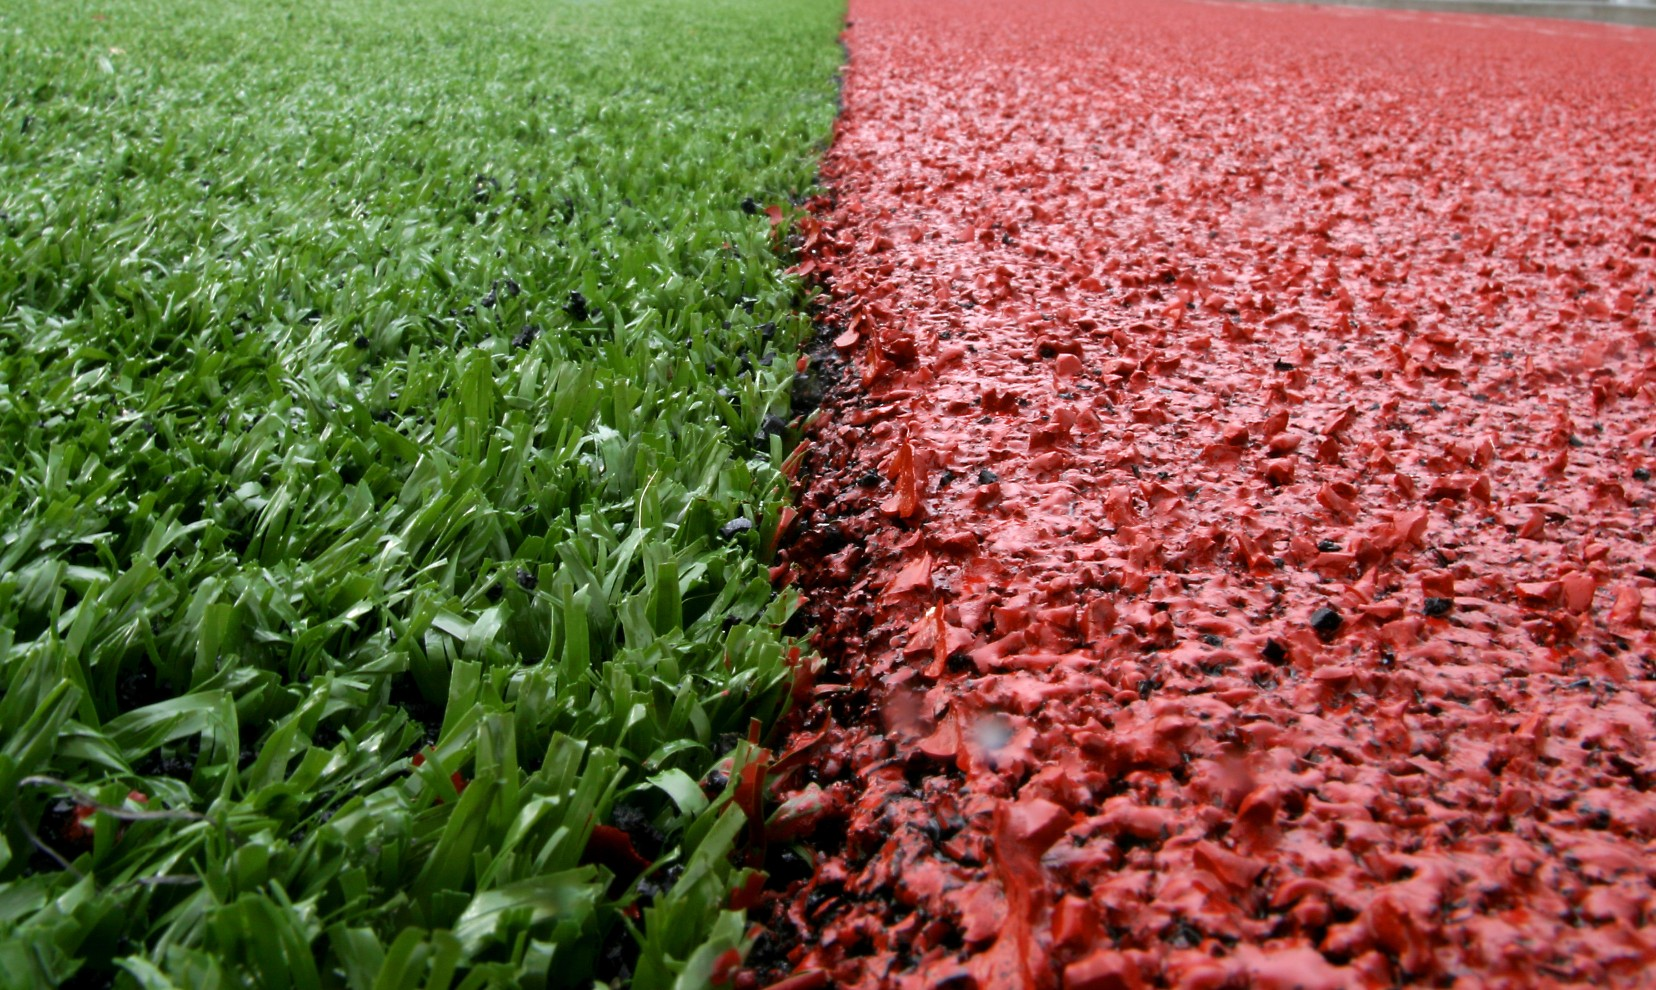 A 4G pitch construction offers the same artificial turf finish as a 3G surface, but with no rubber infill